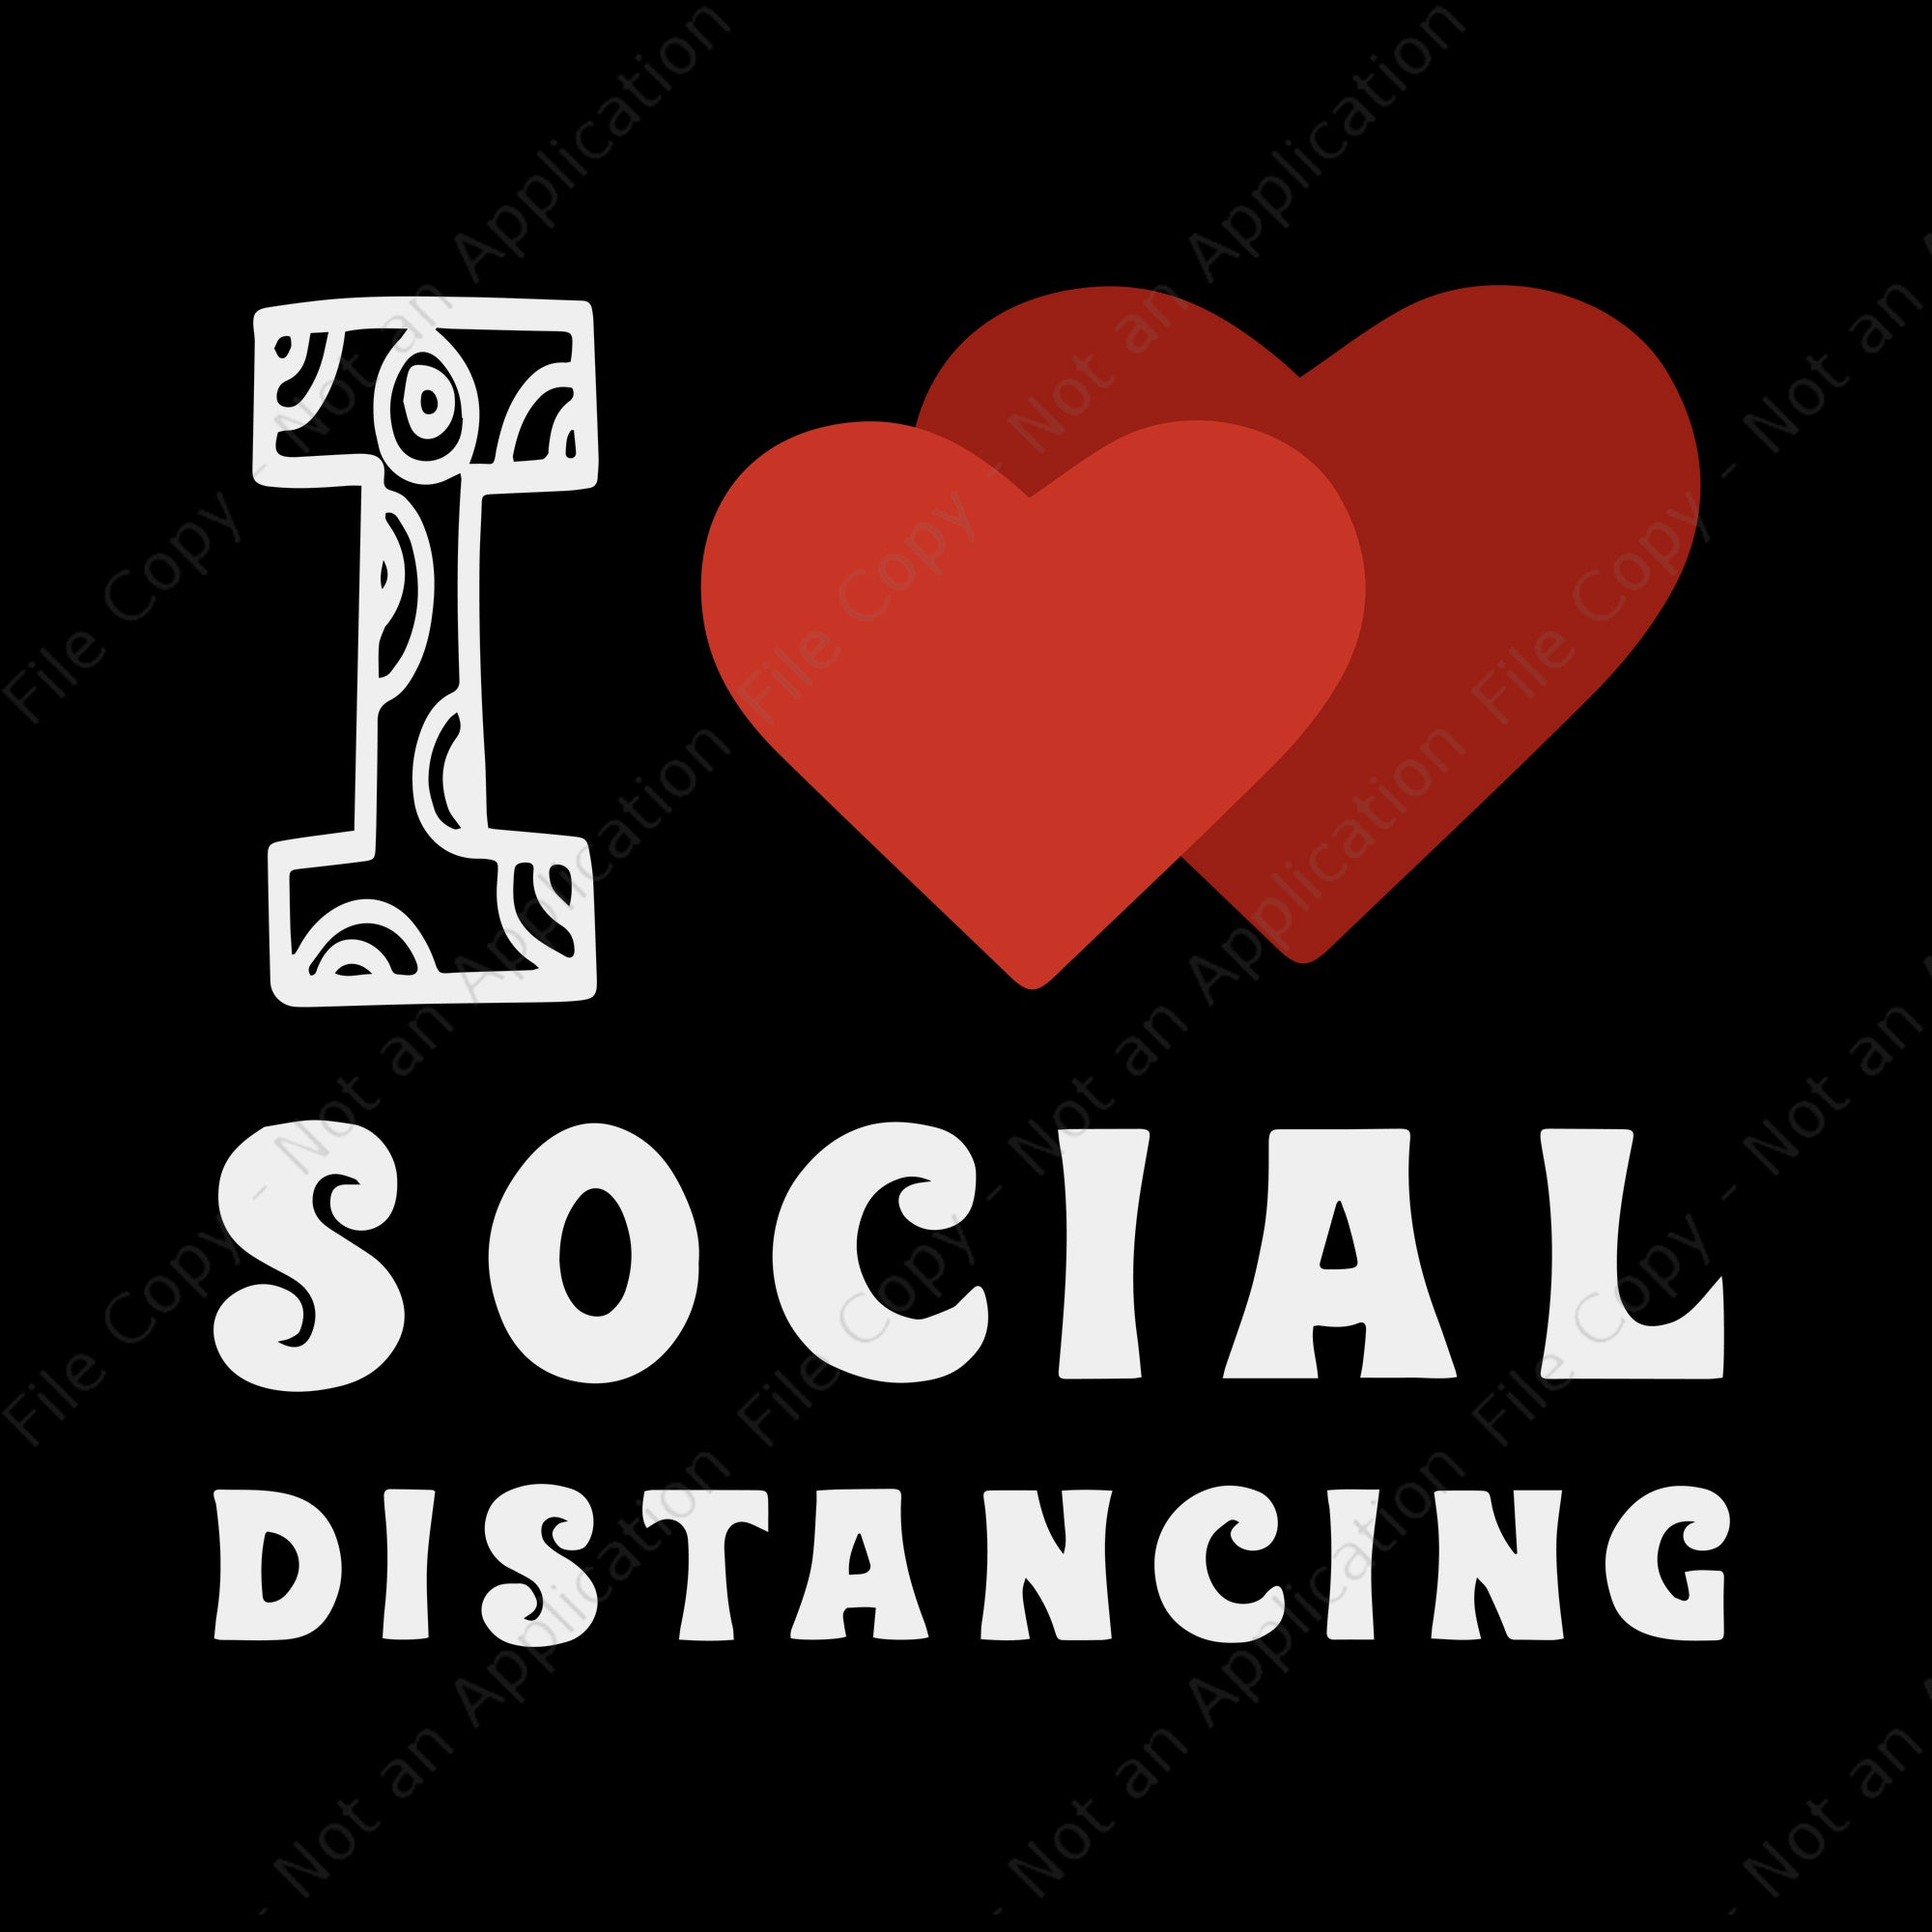 I Love Social Distancing svg, I Love Social Distancing , I Love Social Distancing png, I Love Social Distancing Shirt Funny Virus Introvert buy t shirt design I love social distancing svg, i love social distancing